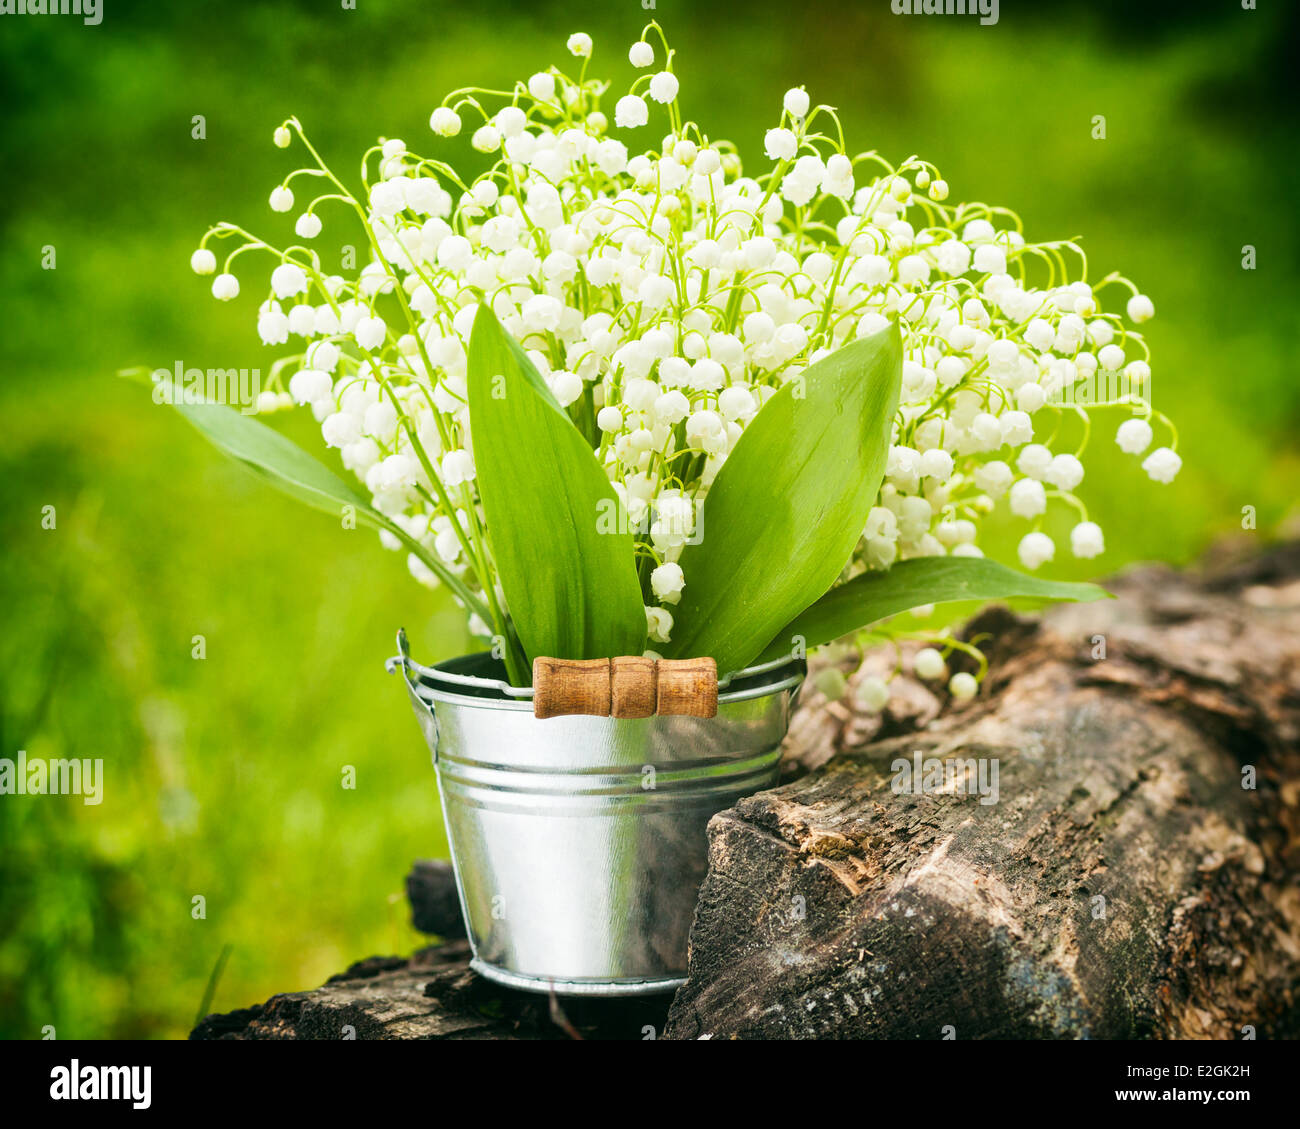 Wild spring lily of the valley flowers in bucket in forest stock wild spring lily of the valley flowers in bucket in forest izmirmasajfo